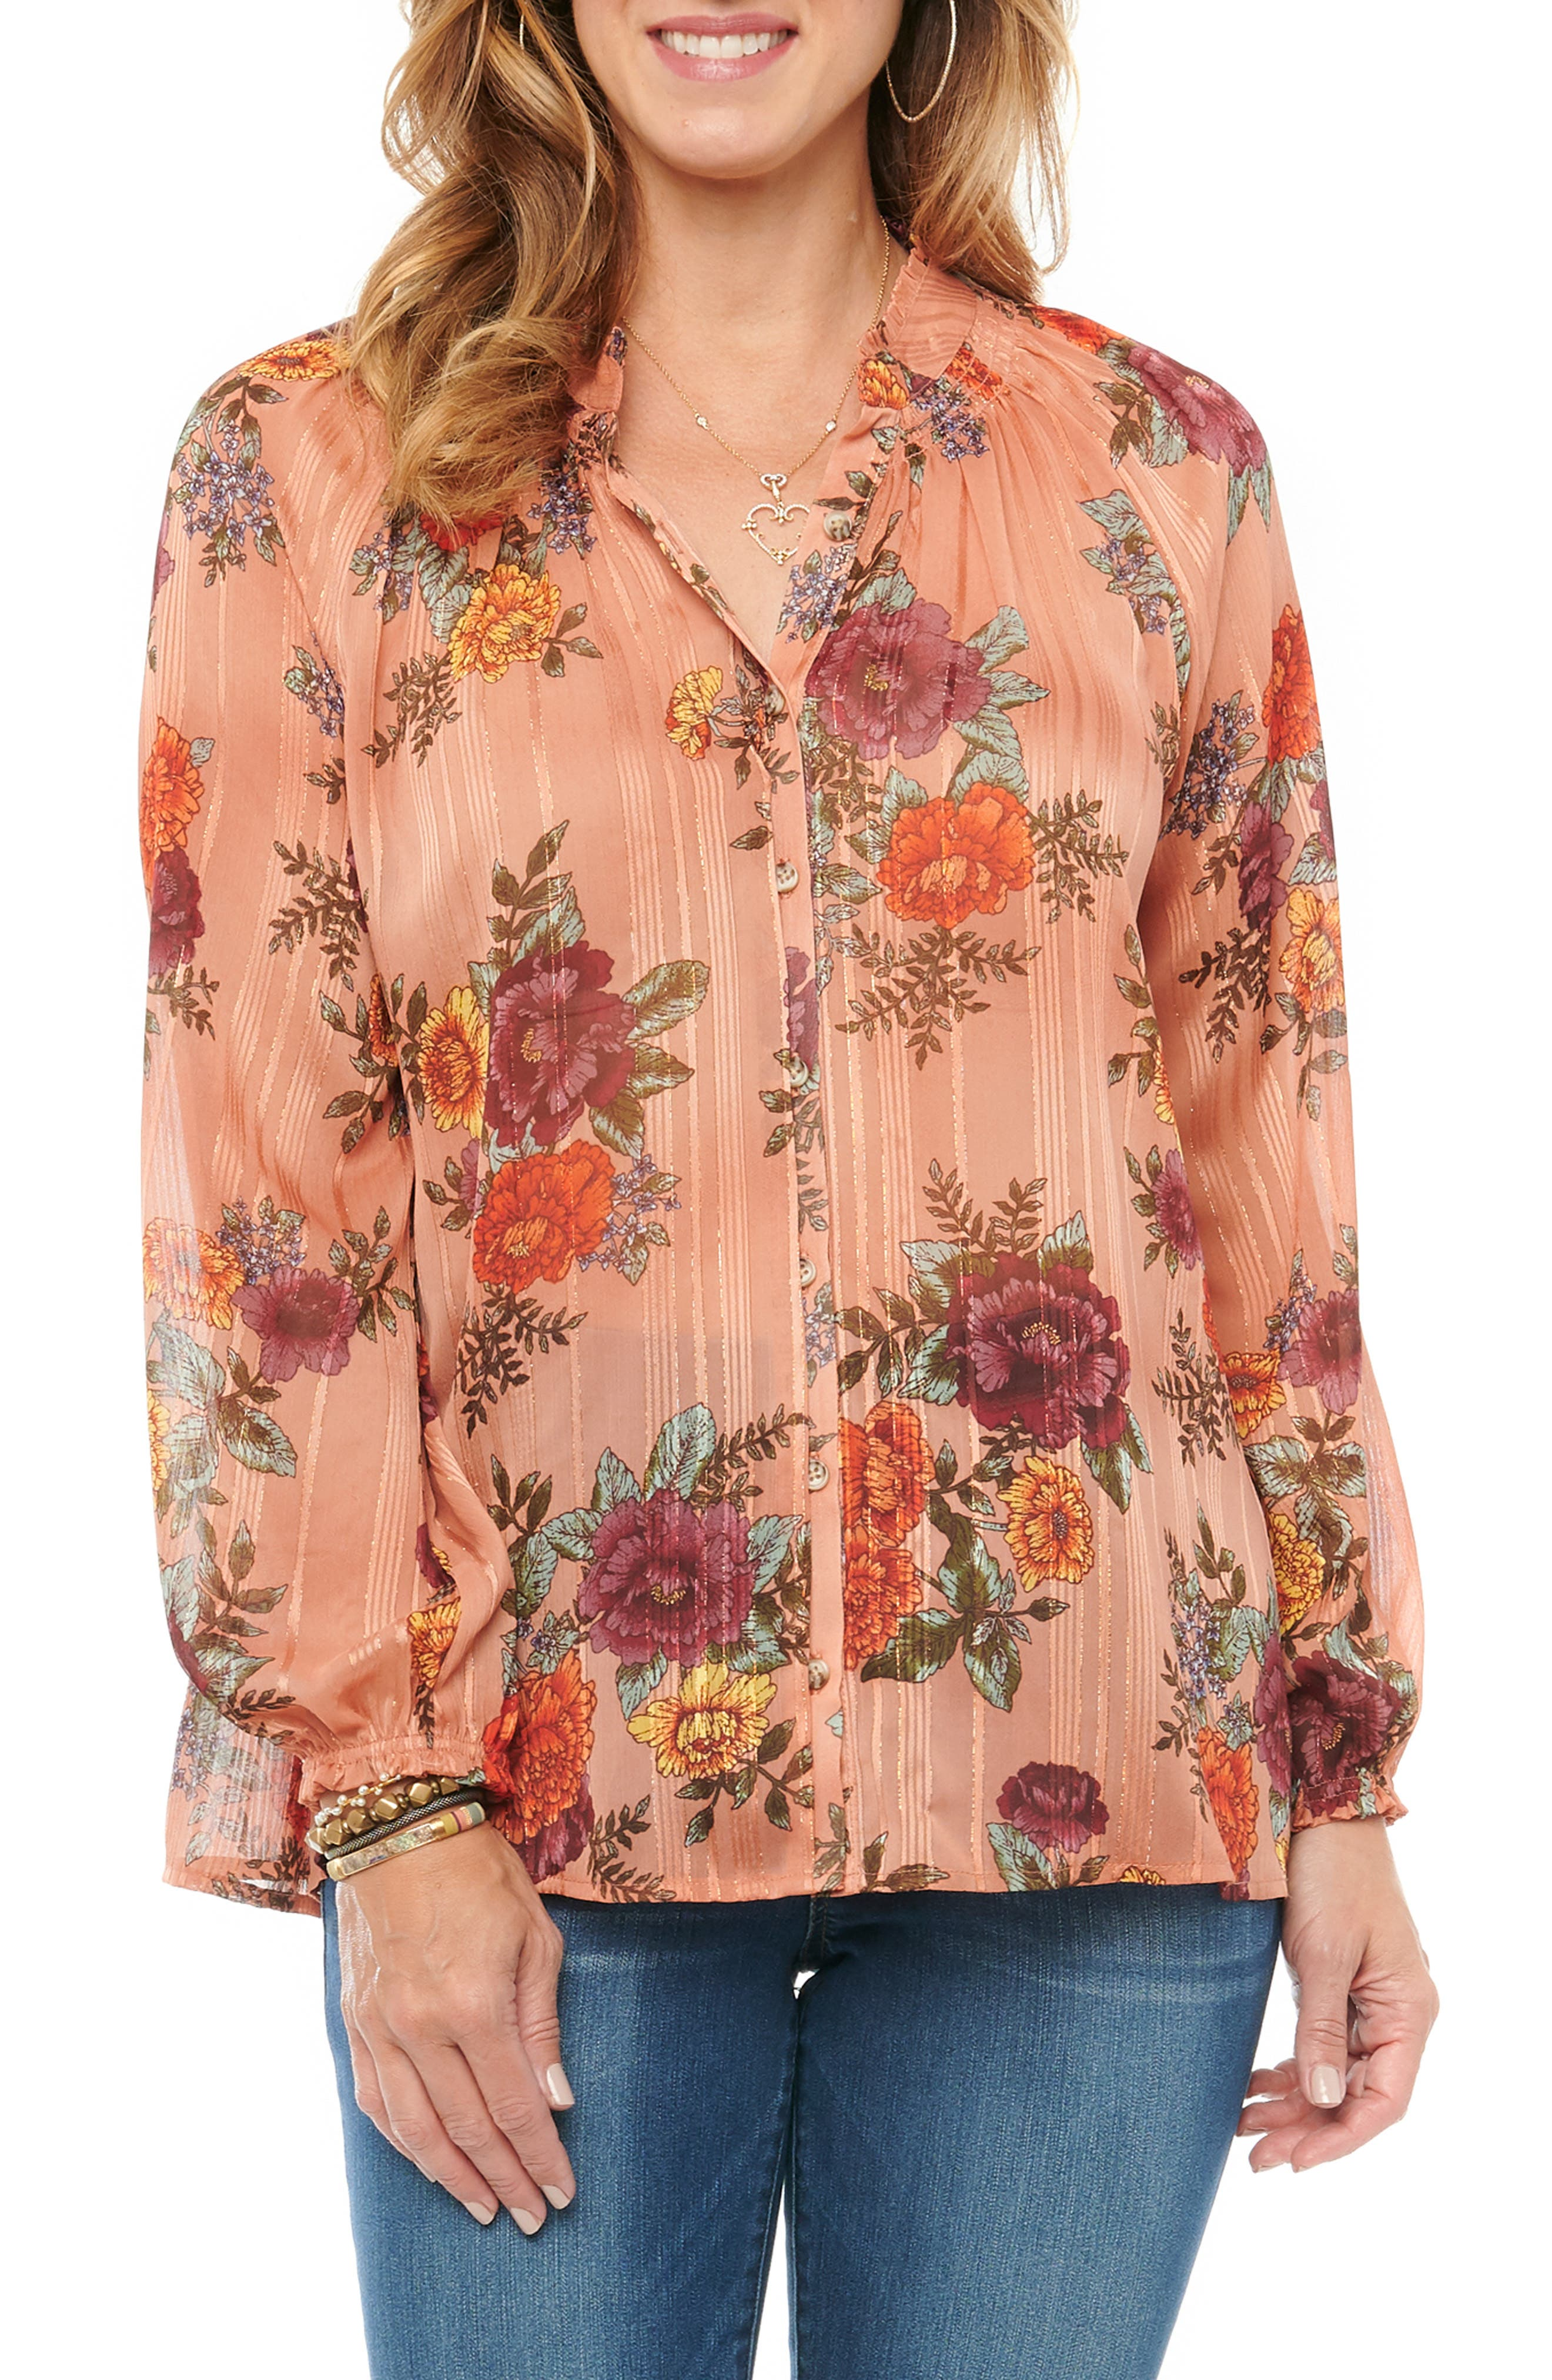 Romance abounds in a smocked and ruffled floral-print blouse with subtle metallic stripes and blouson sleeves. Style Name: Wit & Wisdom Floral Button-Up Chiffon Top (Plus Size). Style Number: 6133438. Available in stores.